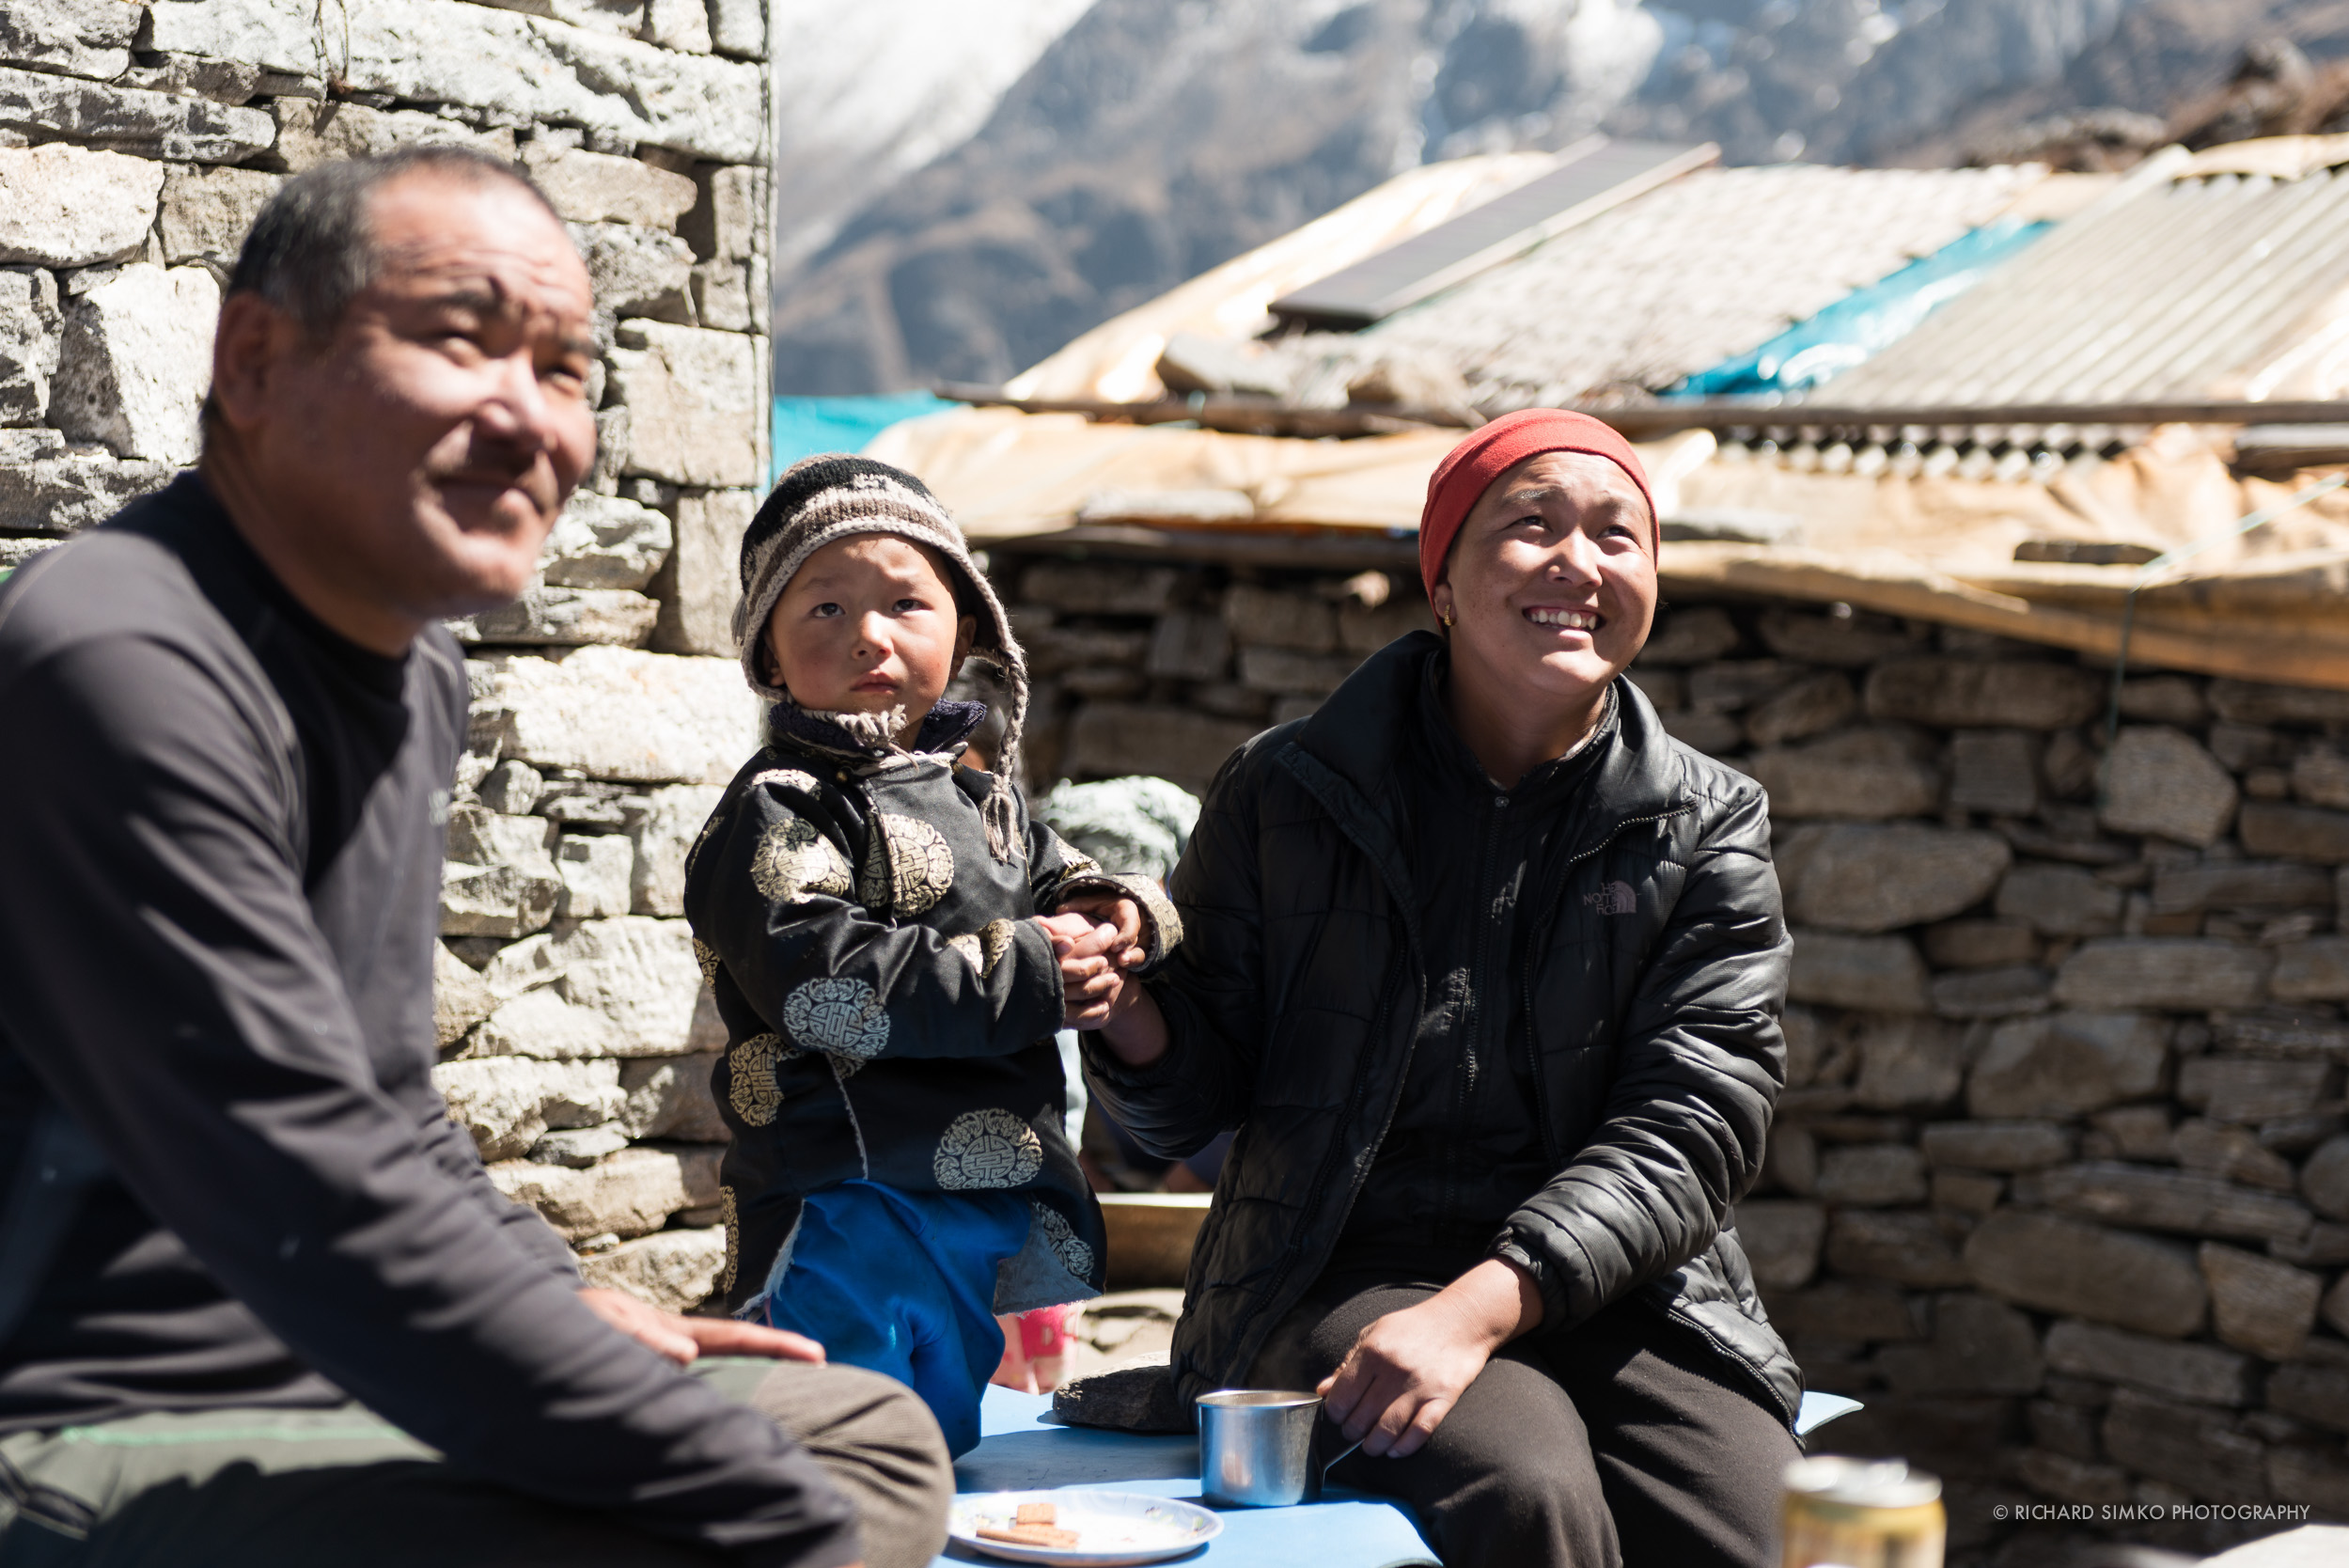 Moment for rest. Little Passang Sherpa and his mother are observing people descending from Zatrwa Pass.